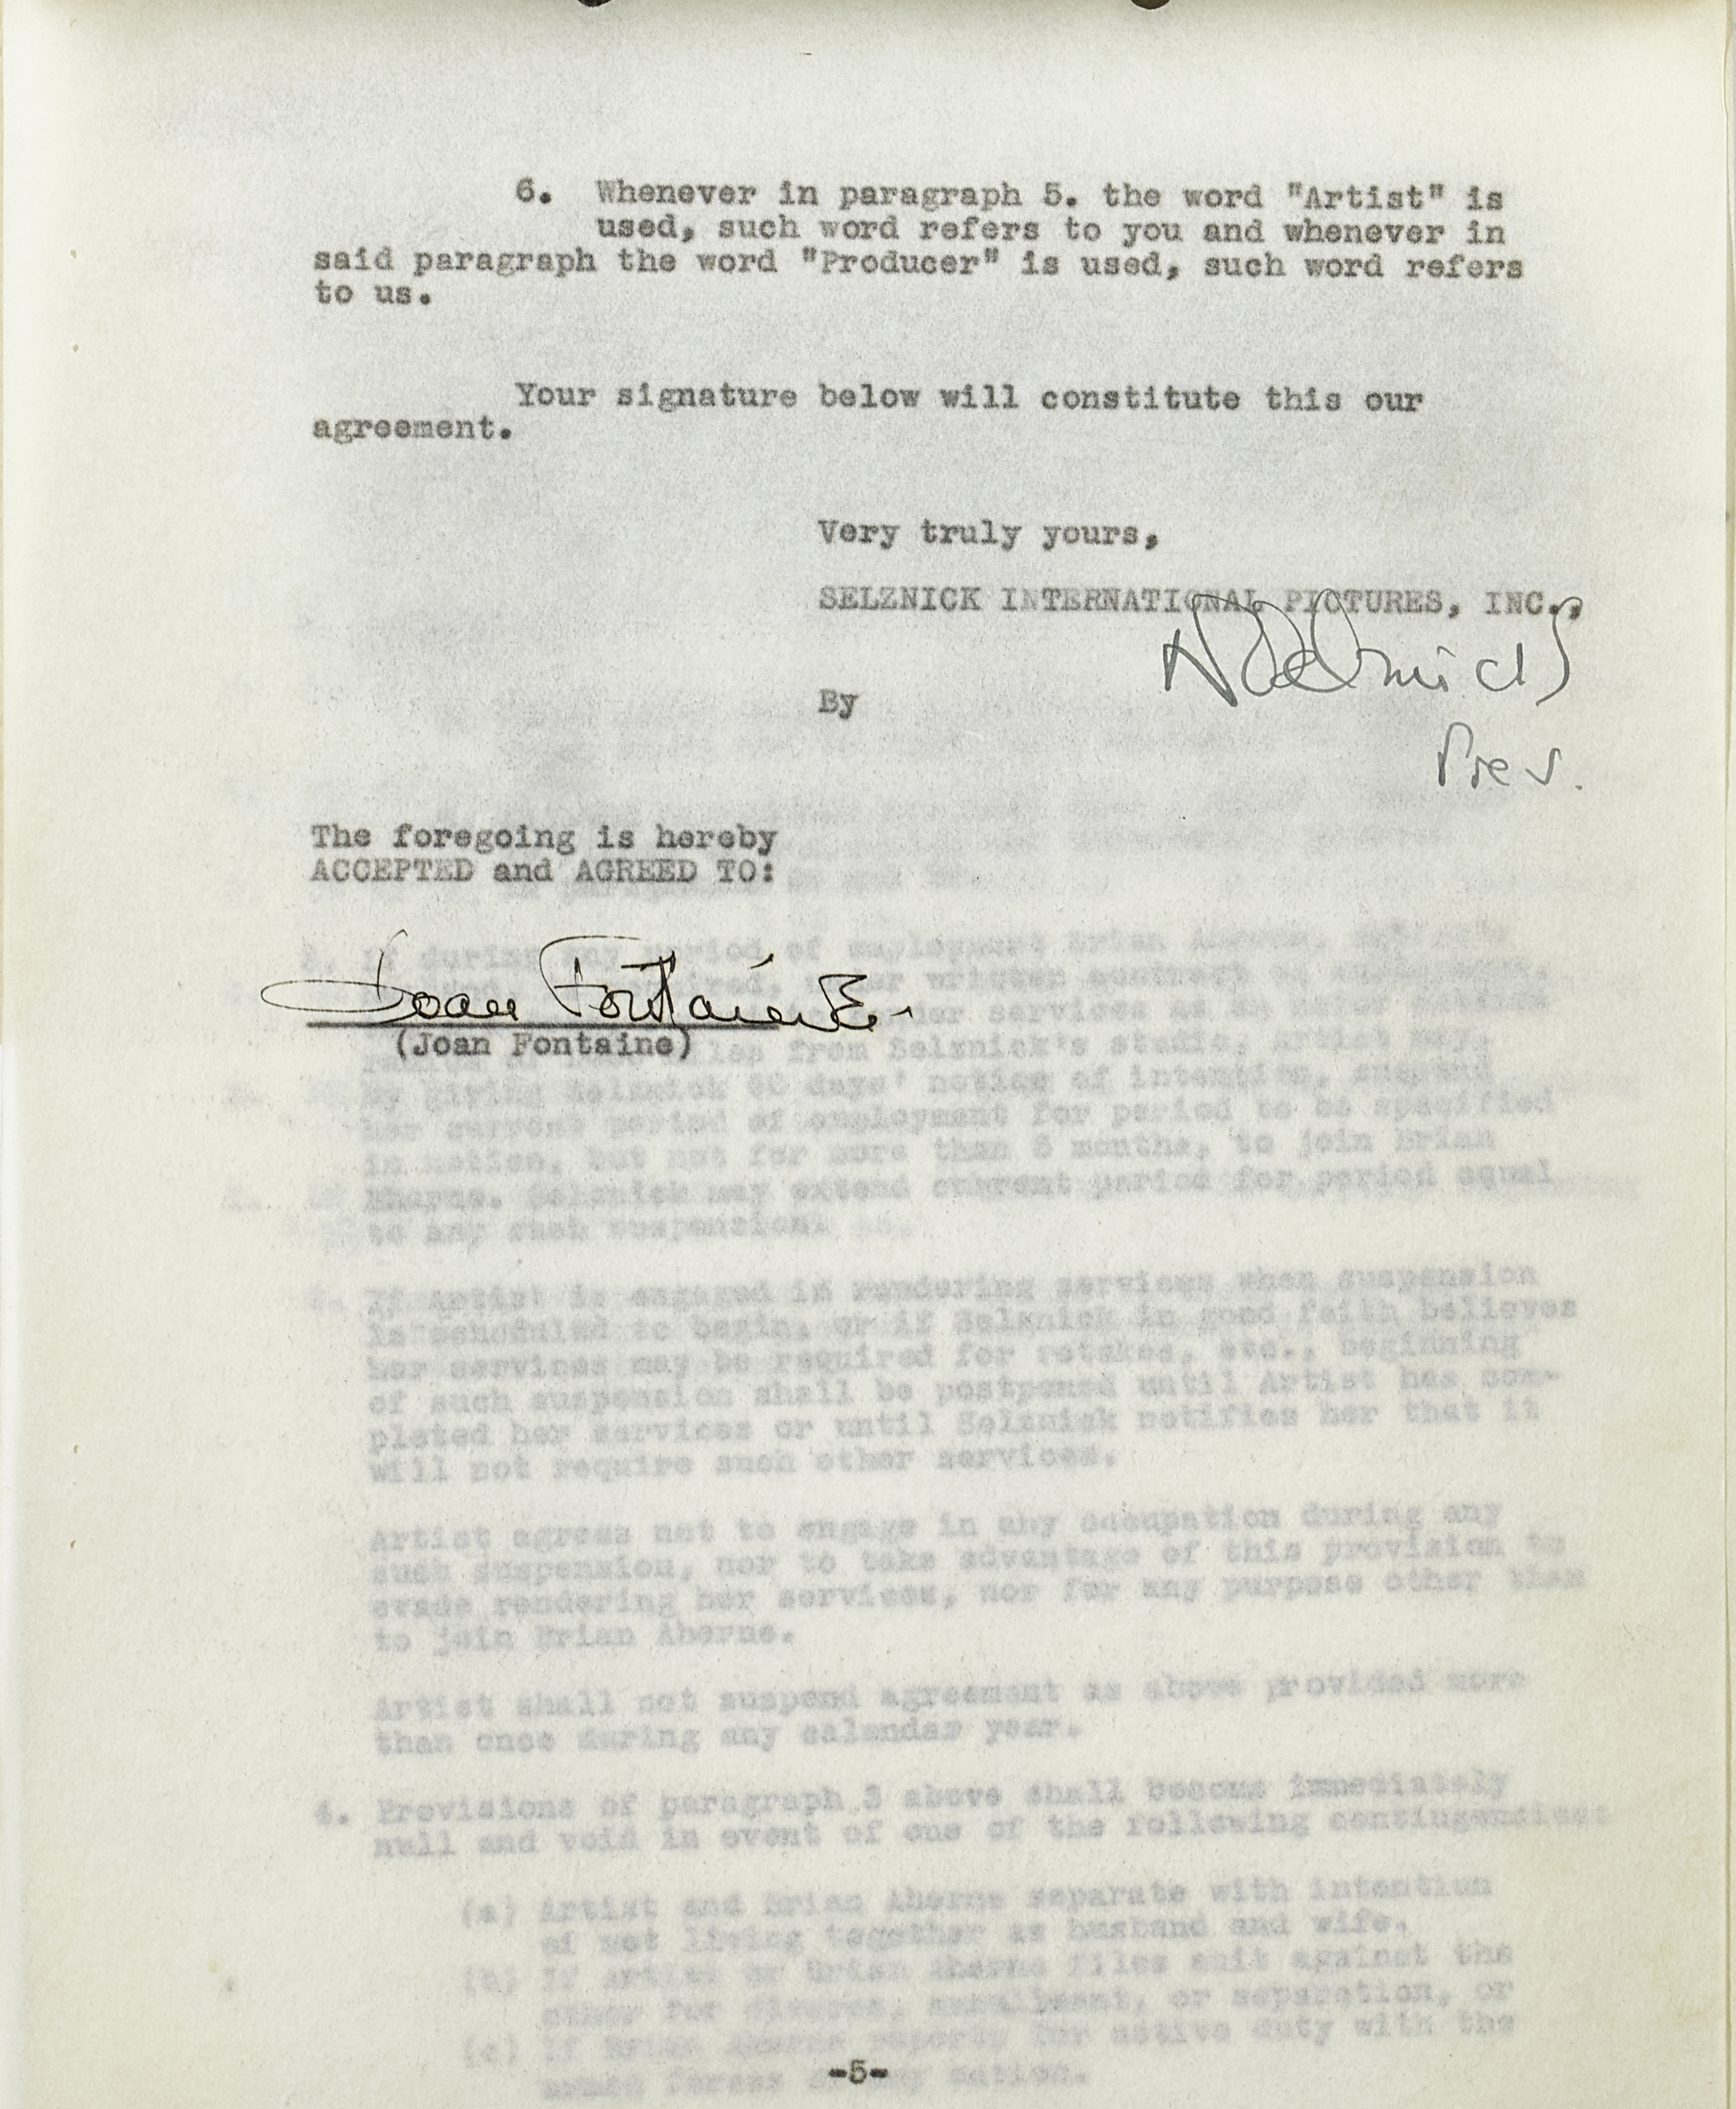 Lot 1027 - A Joan Fontaine contract with Selznick International Pictures